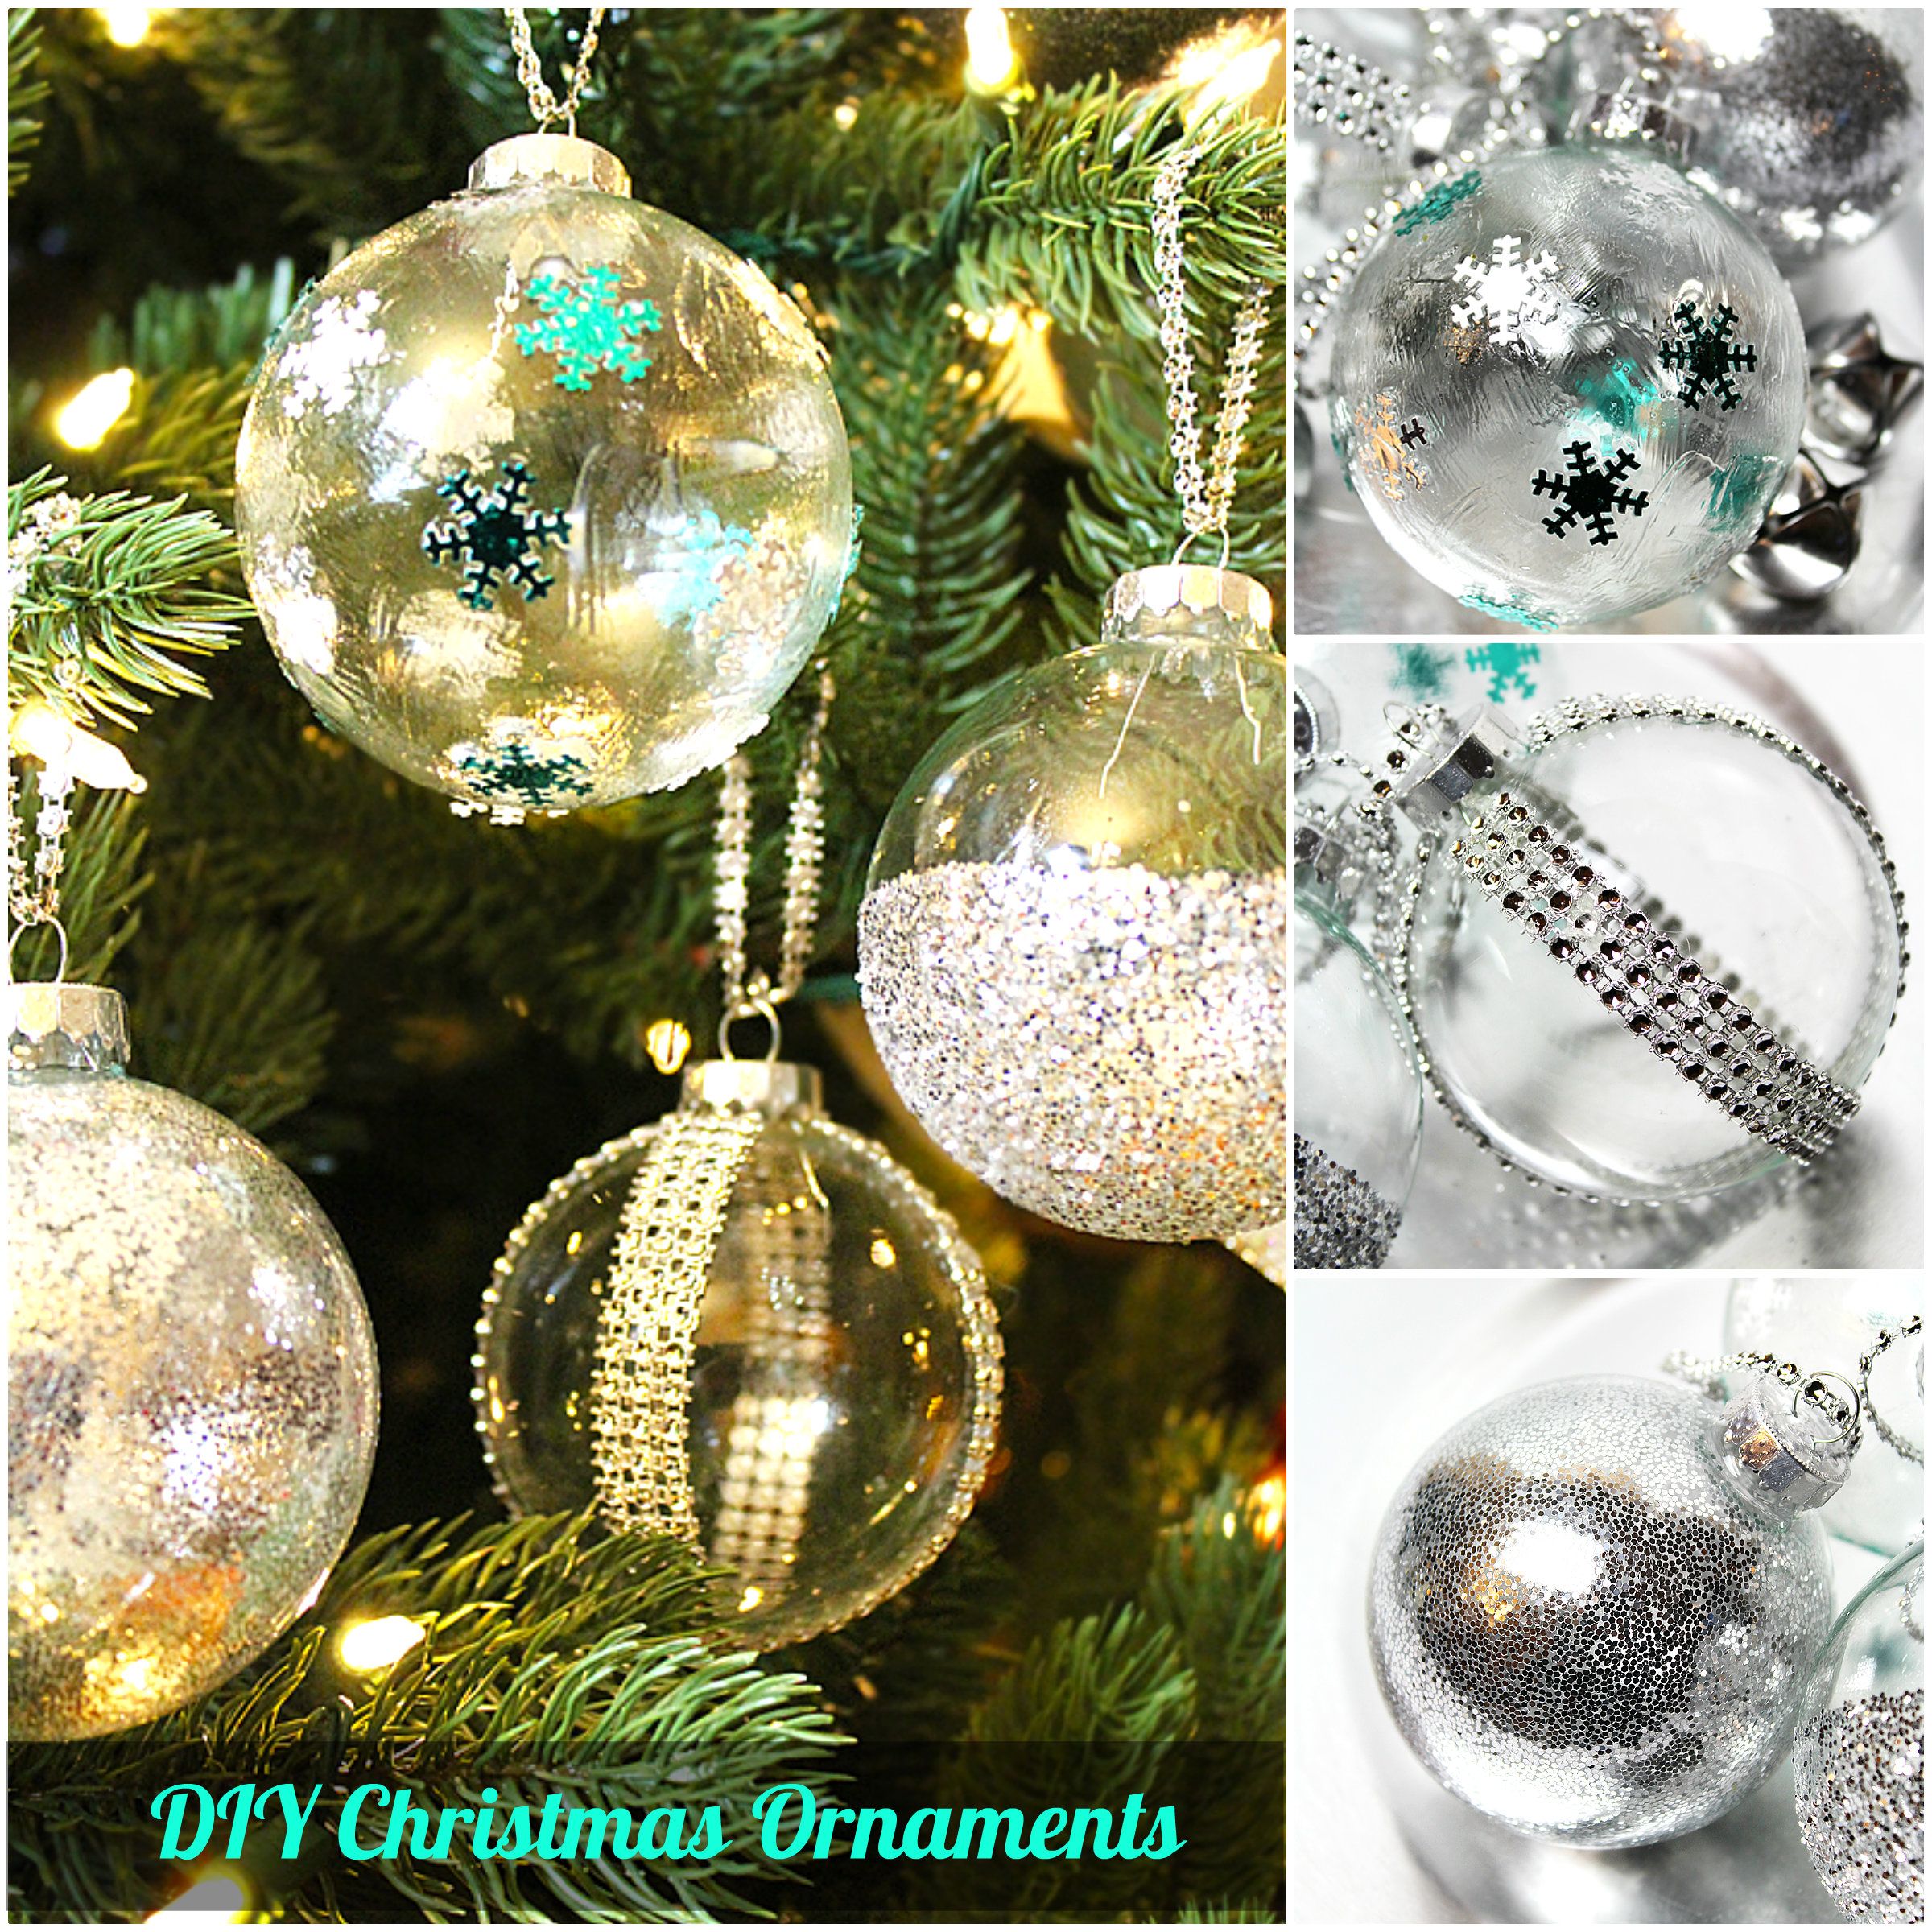 Diy christmas decorations 2014 - Diy Christmas Ornaments